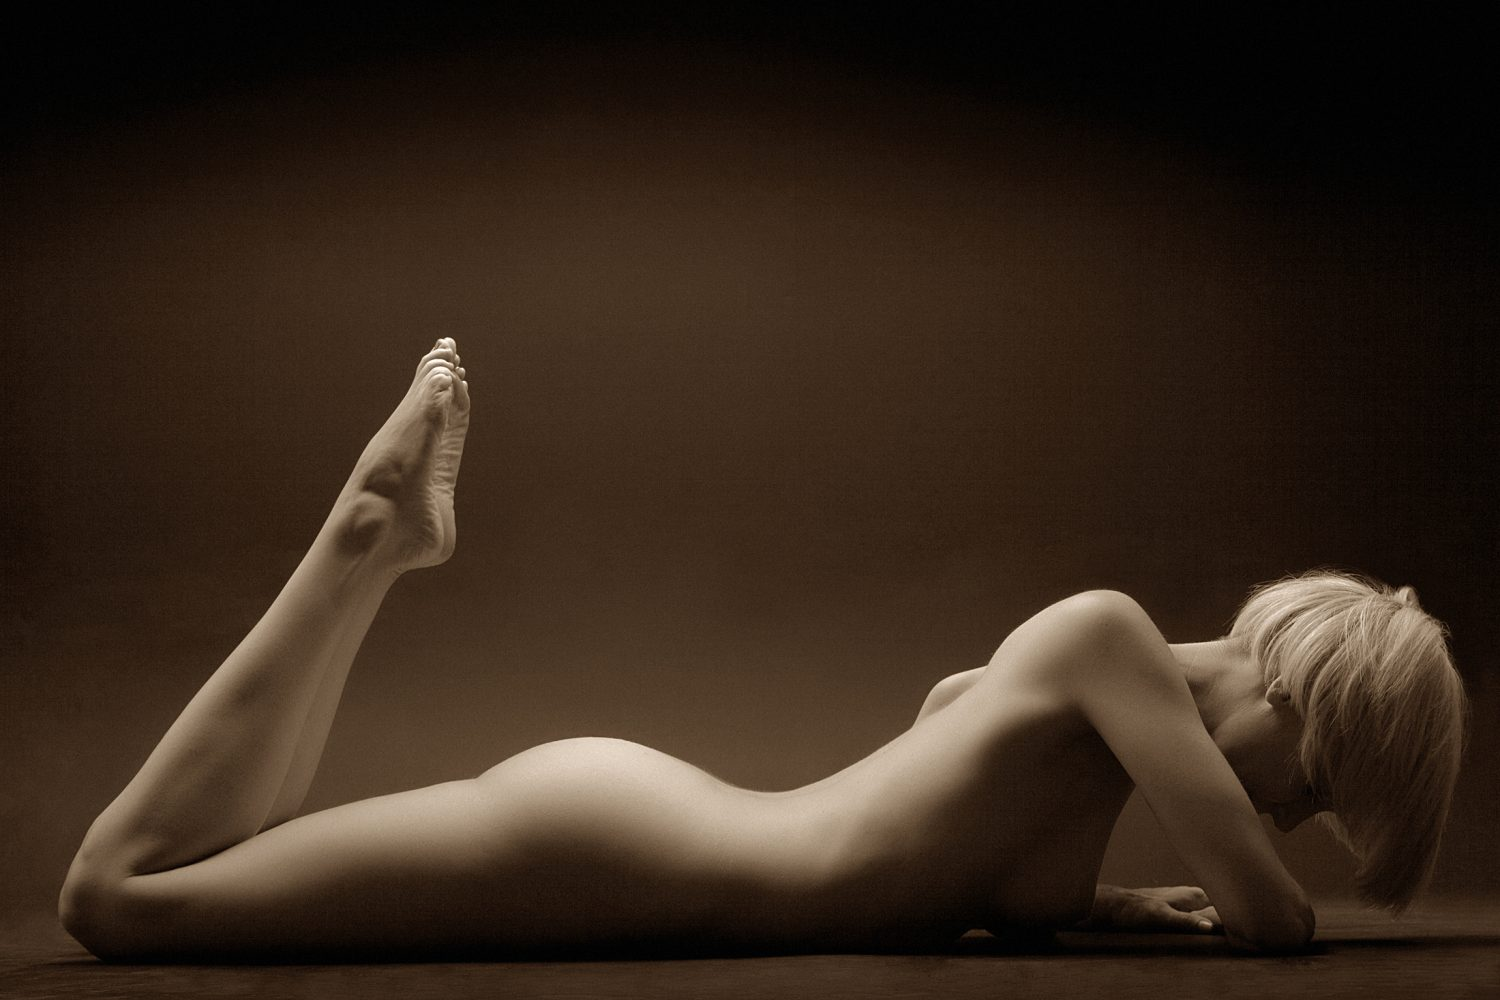 Moody, artistic nude photograph by Perth Photographers